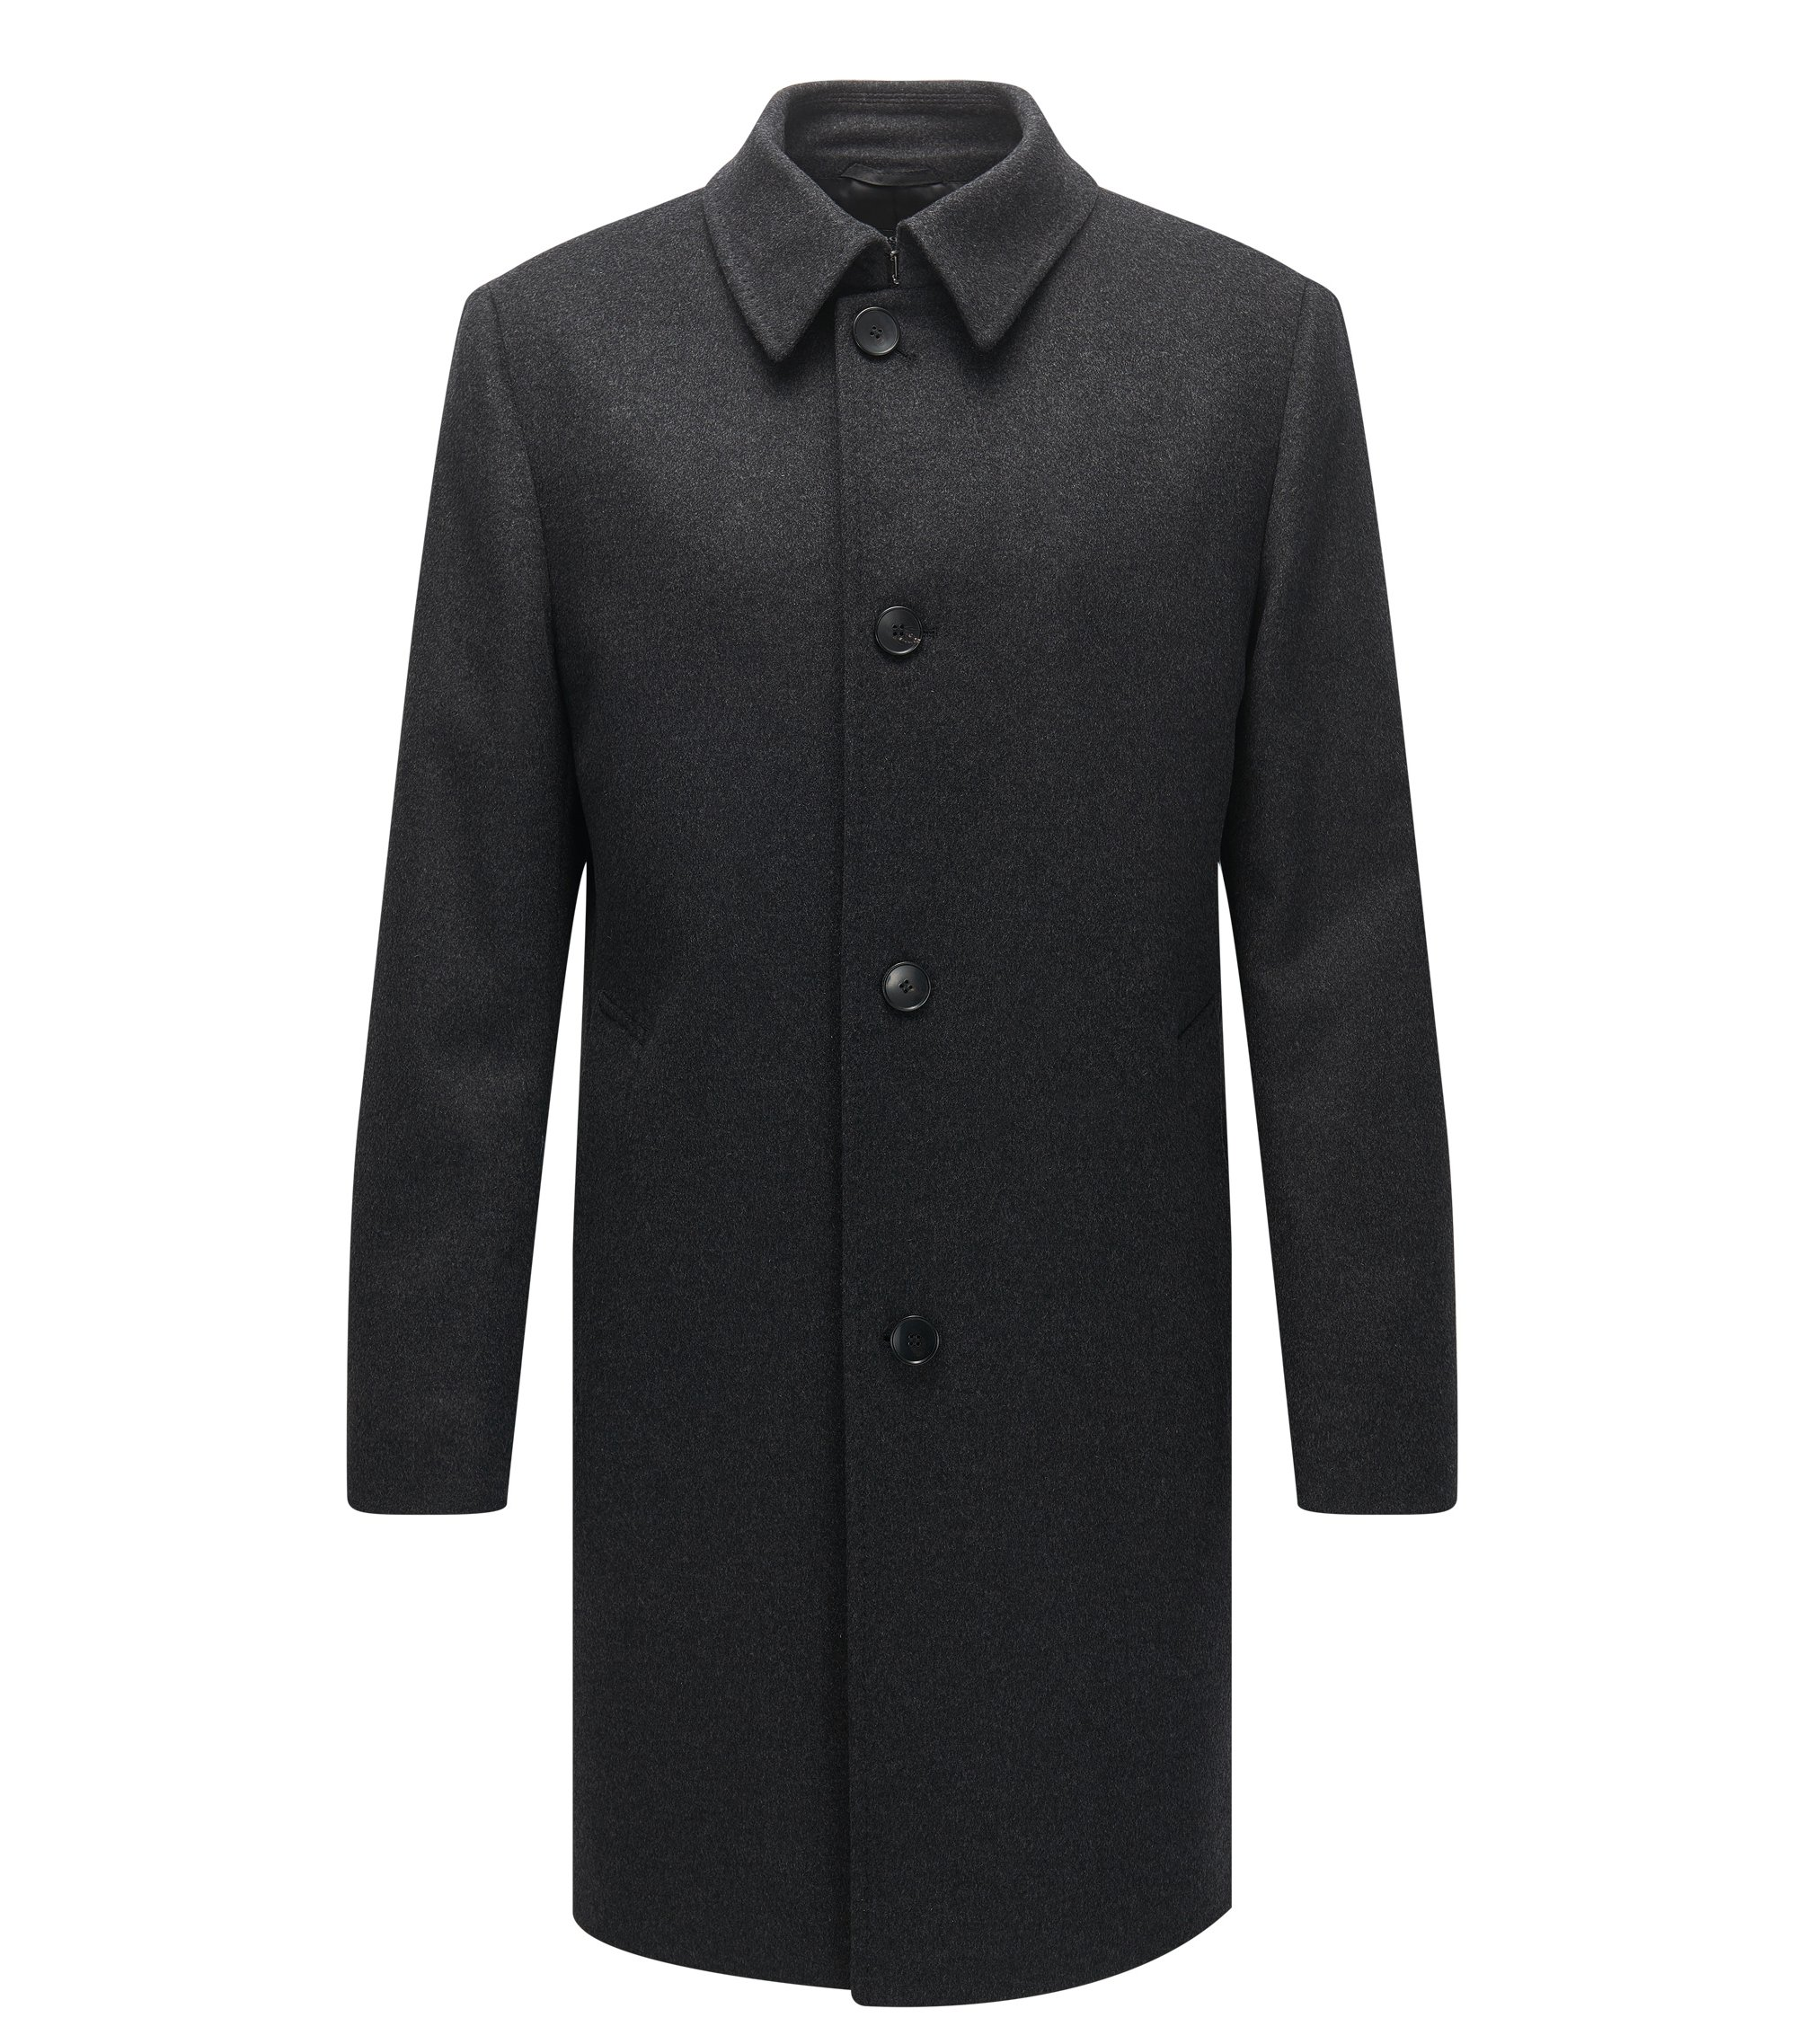 Wool-blend coat in a regular fit, Anthracite